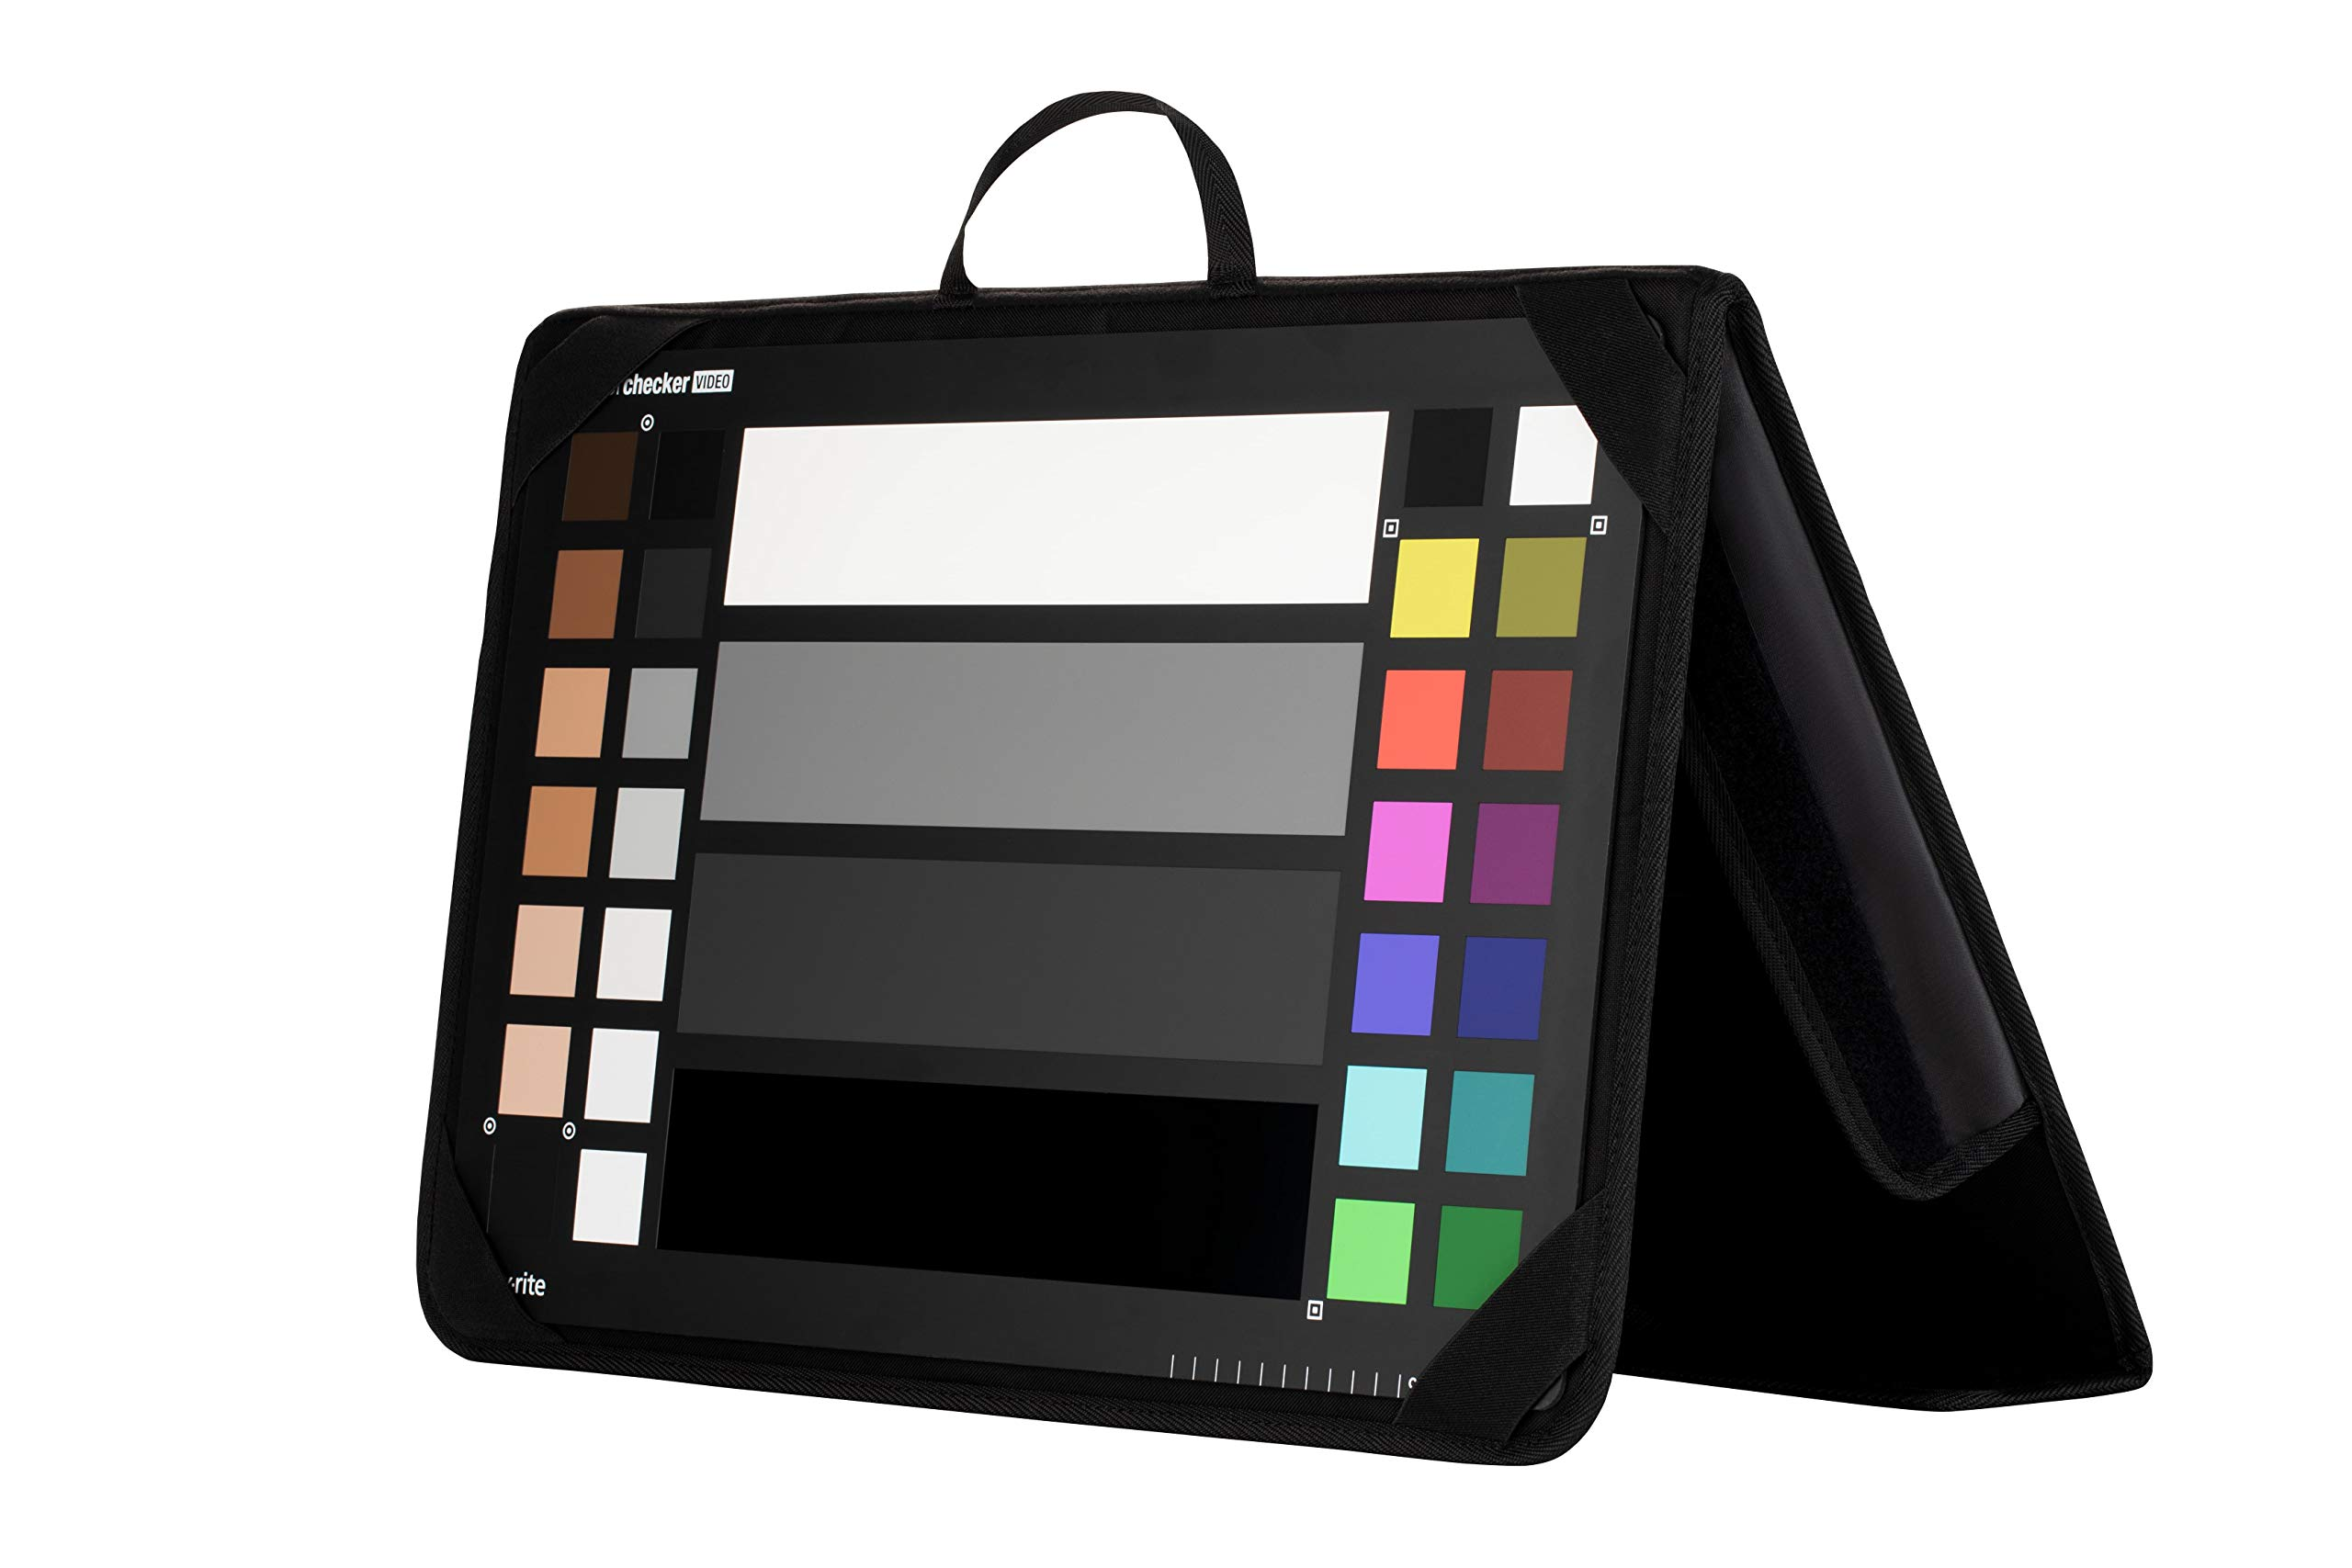 X-Rite ColorChecker Video XL -Target with Configurable Carrying Case (MSCCVPR-XL-CS) by X-Rite (Image #2)